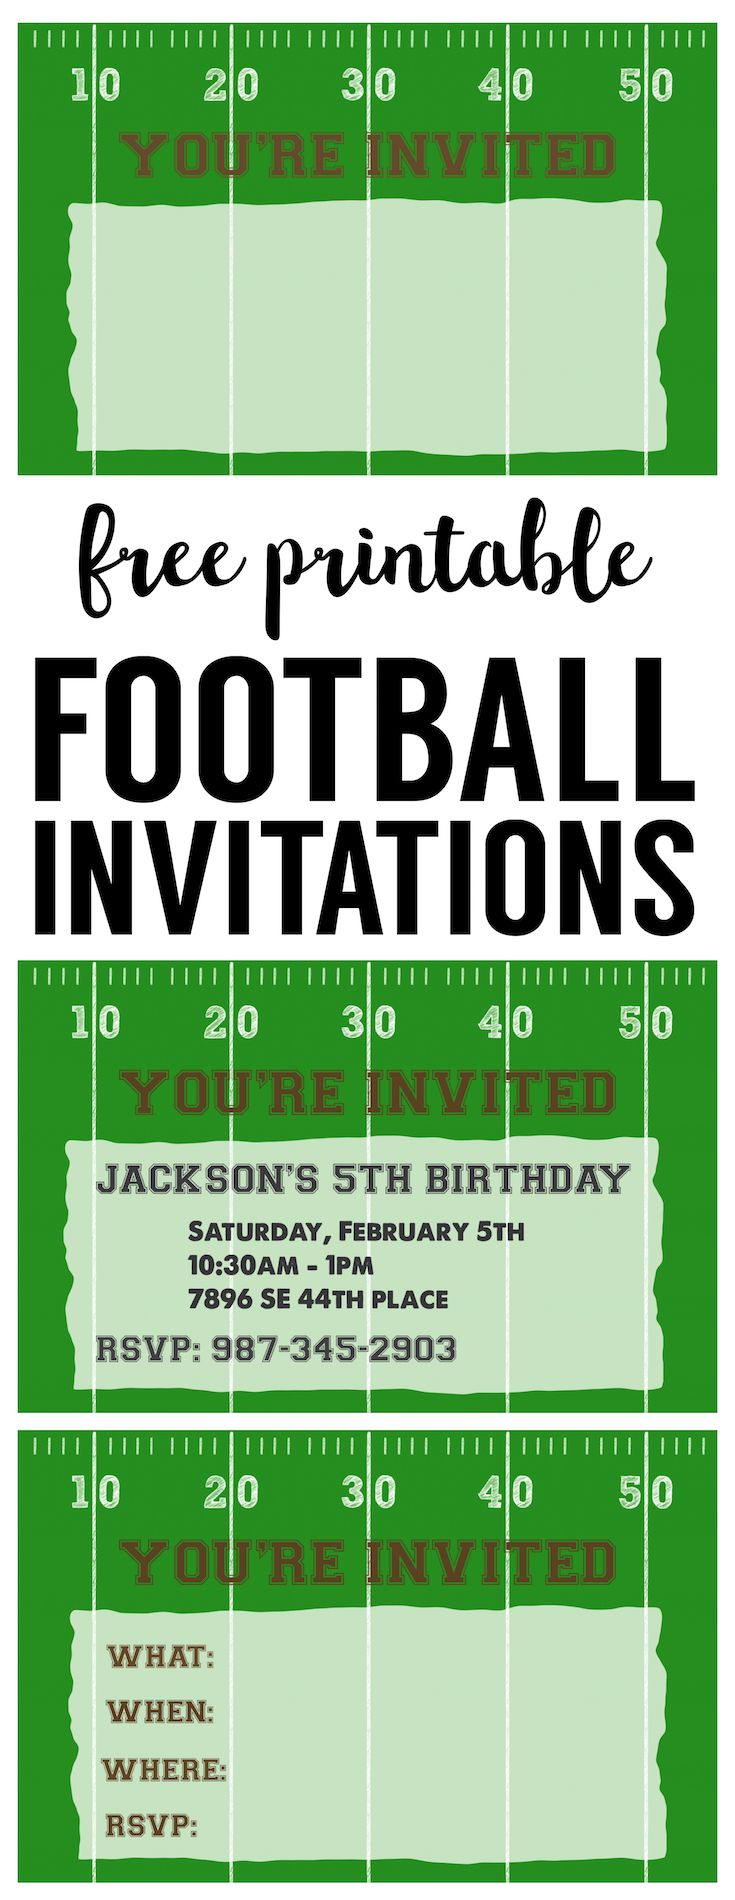 Football Party Invitation Template. Free Printable football